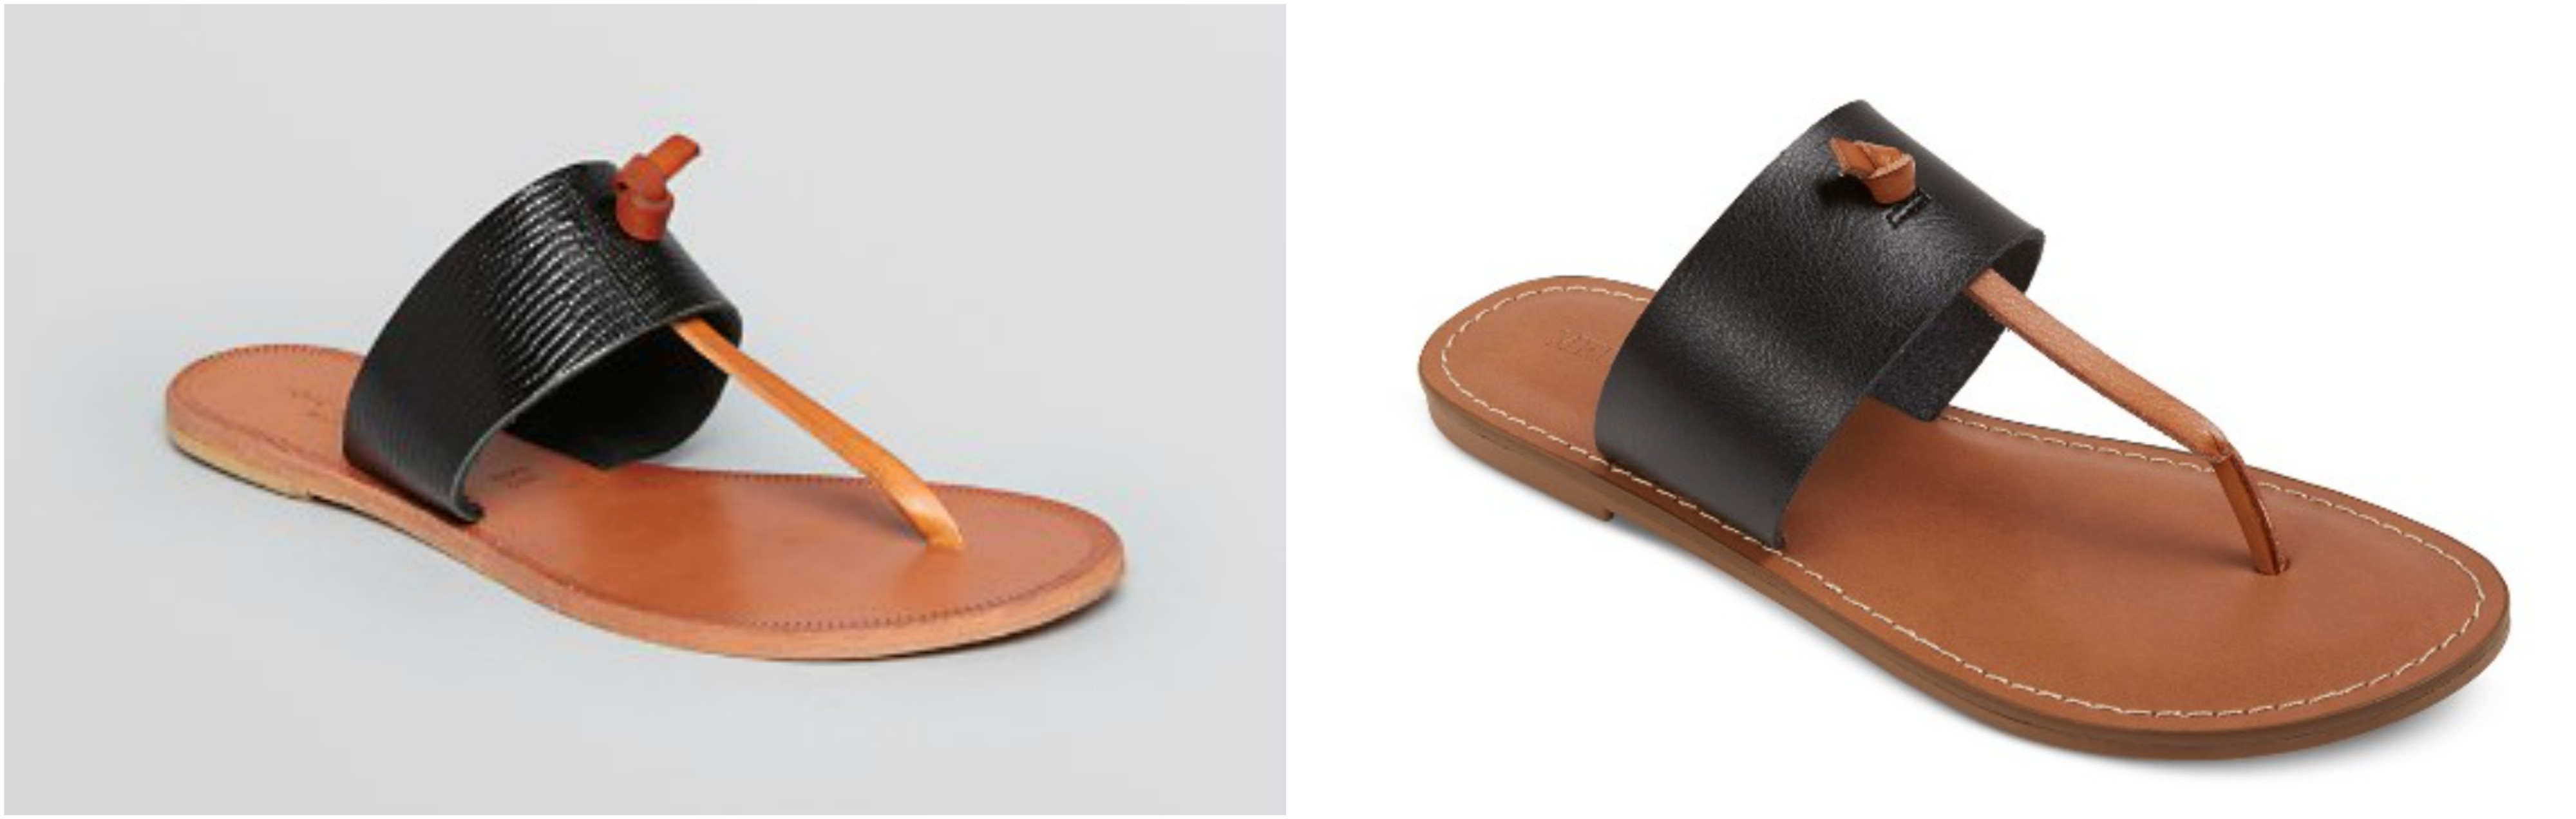 Joie Sandals - Best Target Shoe Dupes - Communikait by Kait Hanson